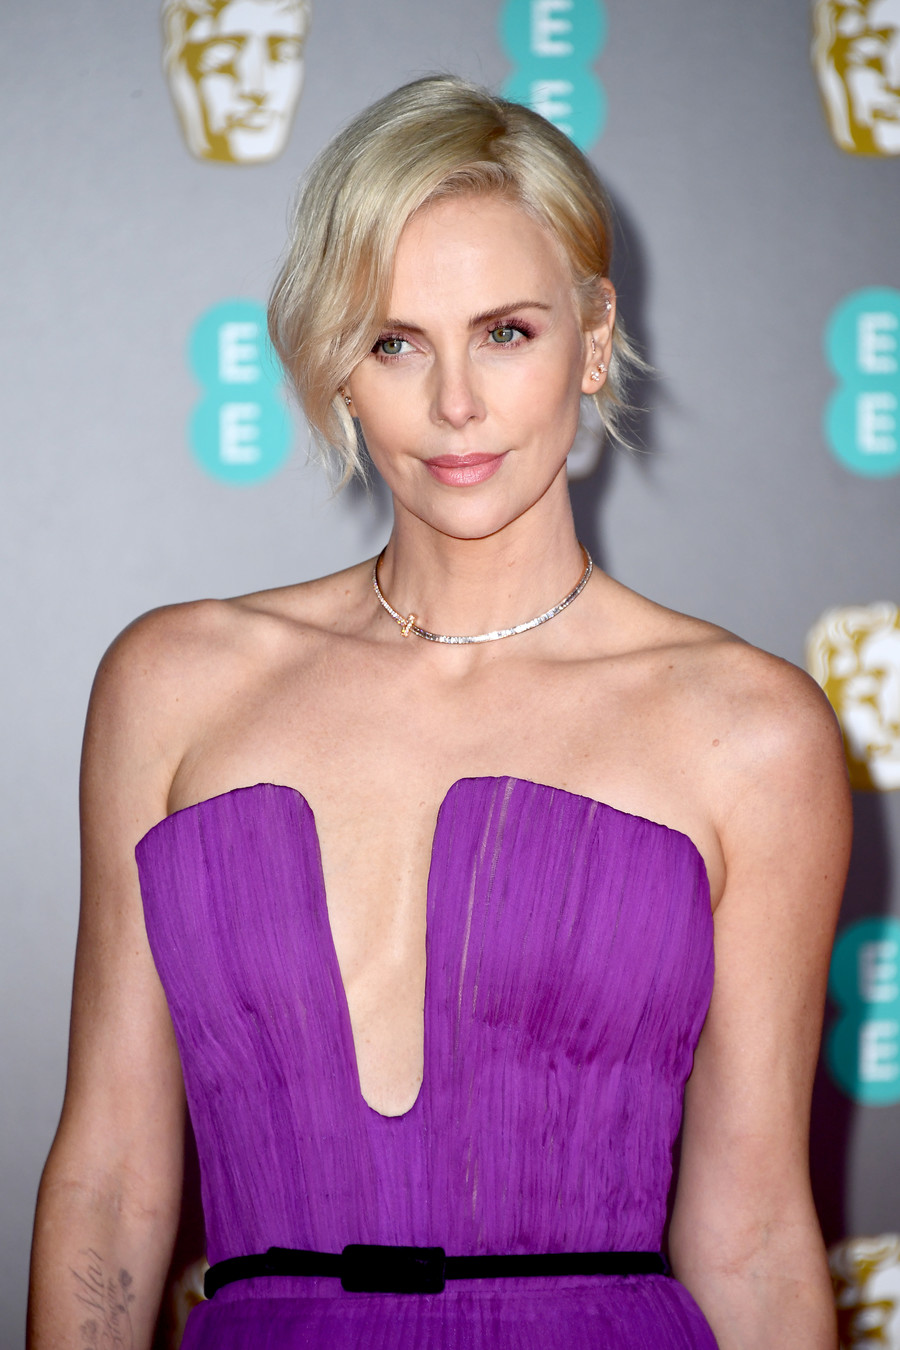 Charlize Theron / Gareth Cattermole / GettyImages